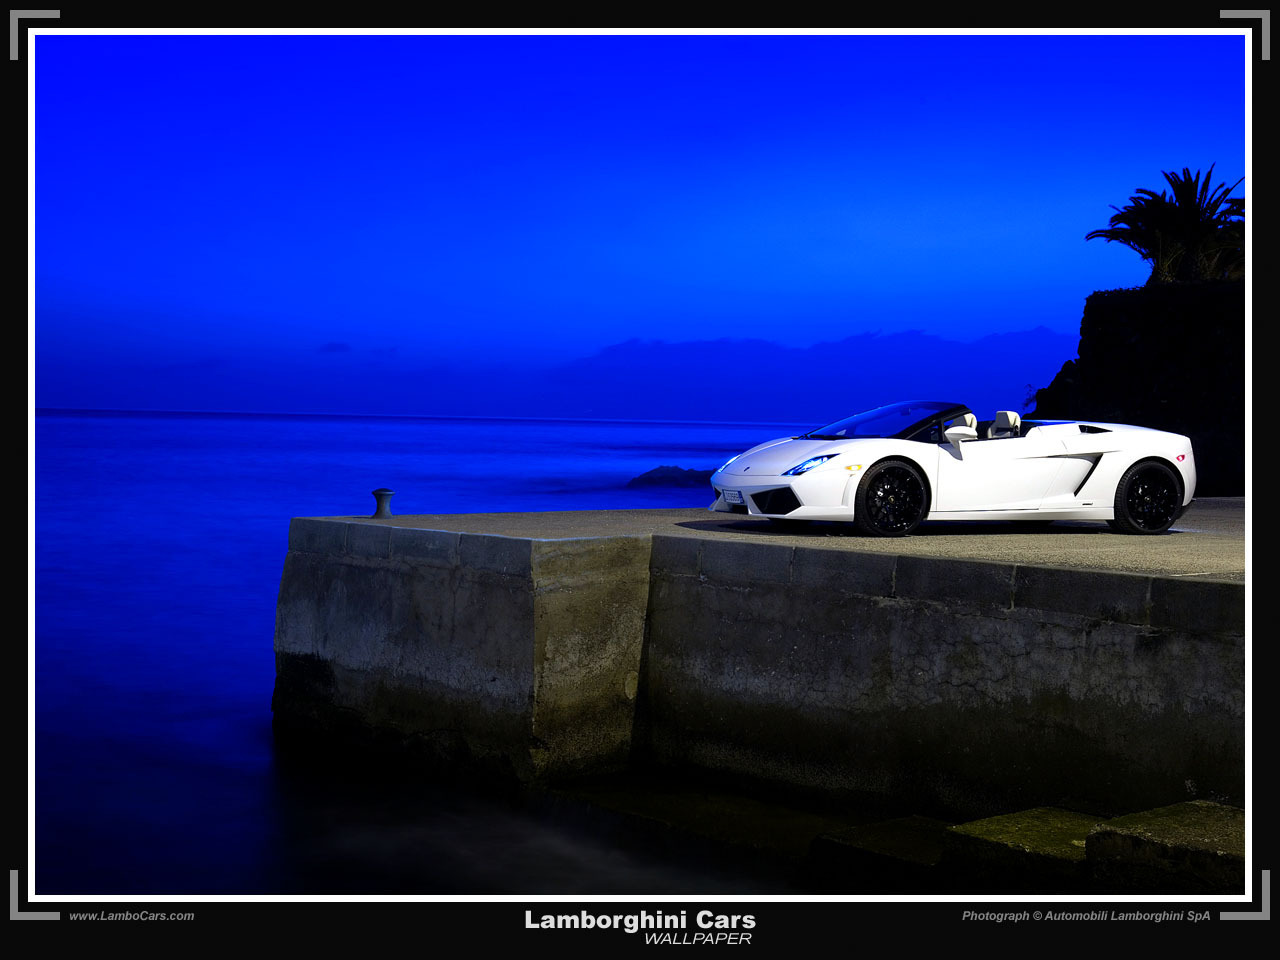 Cool Lamborghini Wallpaper 12822120 Fanpop